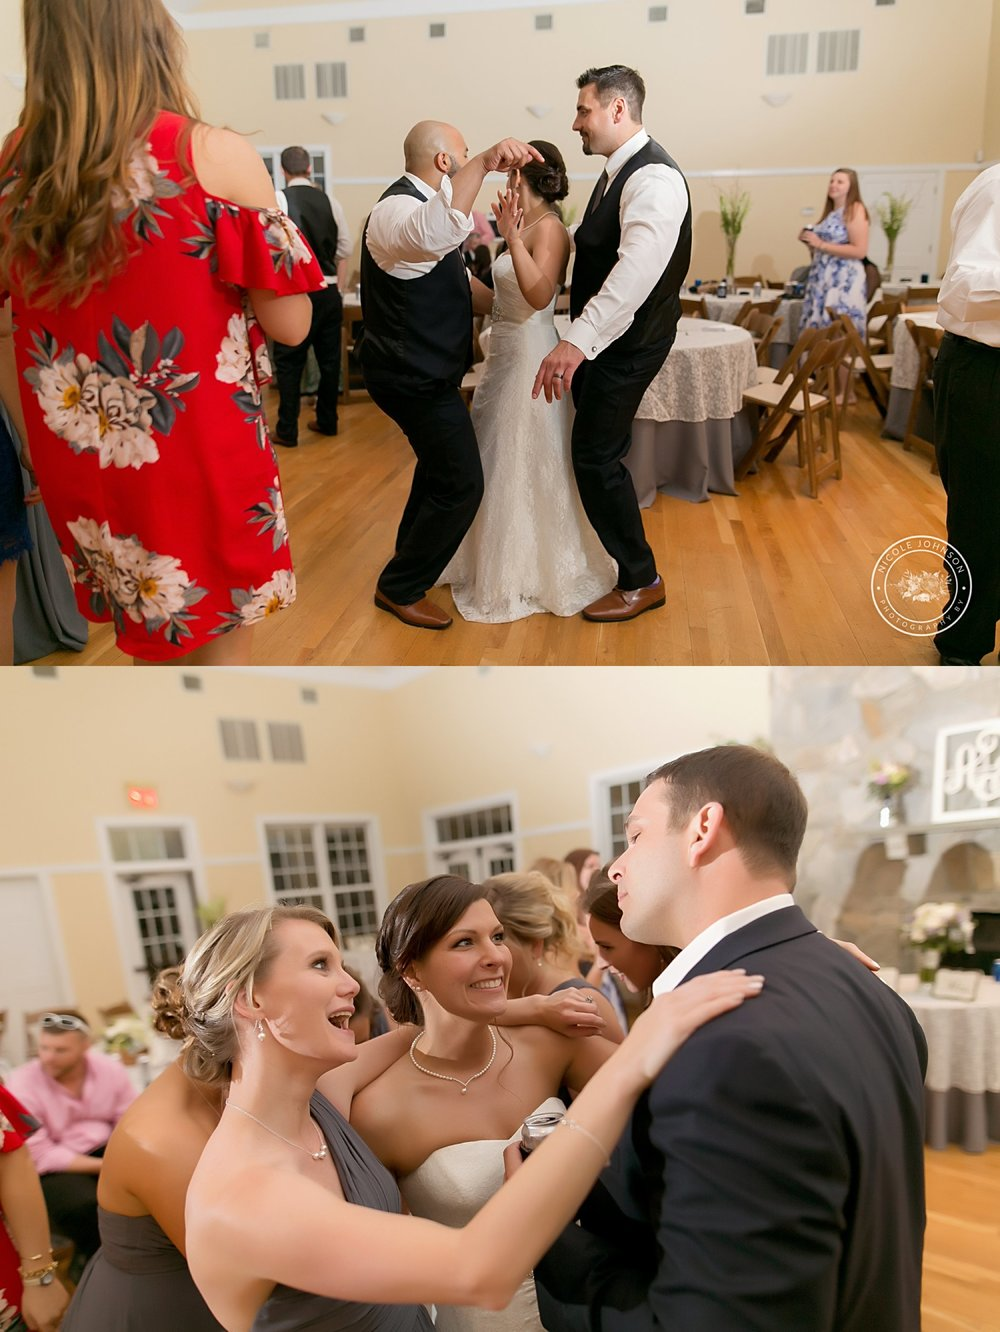 mechanicsvillewedding_869.jpg